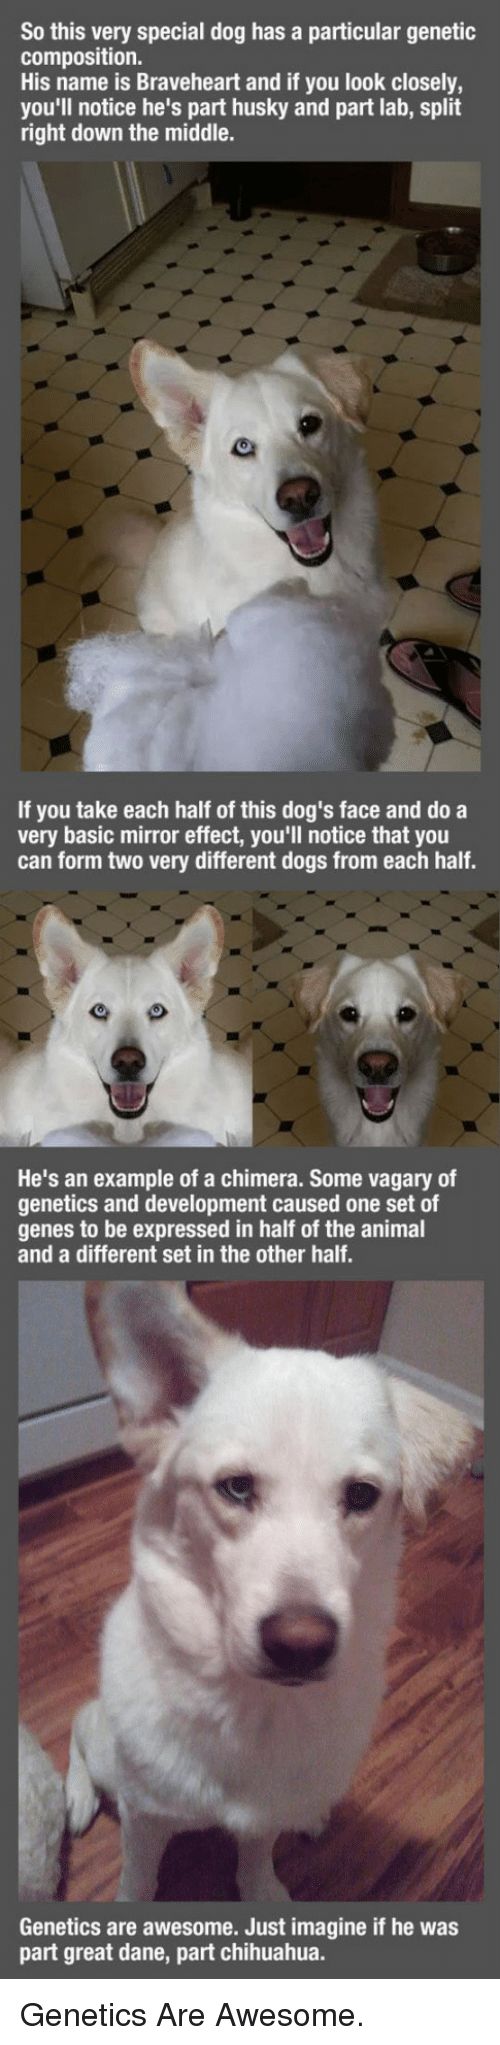 braveheart: So this very special dog has a particular genetic  composition.  His name is Braveheart and if you look closely,  you'll notice he's part husky and part lab, split  right down the middle.  If you take each half of this dog's face and do a  very basic mirror effect, you'll notice that you  can form two very different dogs from each half.  He's an example of a chimera. Some vagary of  genetics and development caused one set of  genes to be expressed in half of the animal  and a different set in the other half.  Genetics are awesome. Just imagine if he was  part great dane, part chihuahua. <p>Genetics Are Awesome.</p>